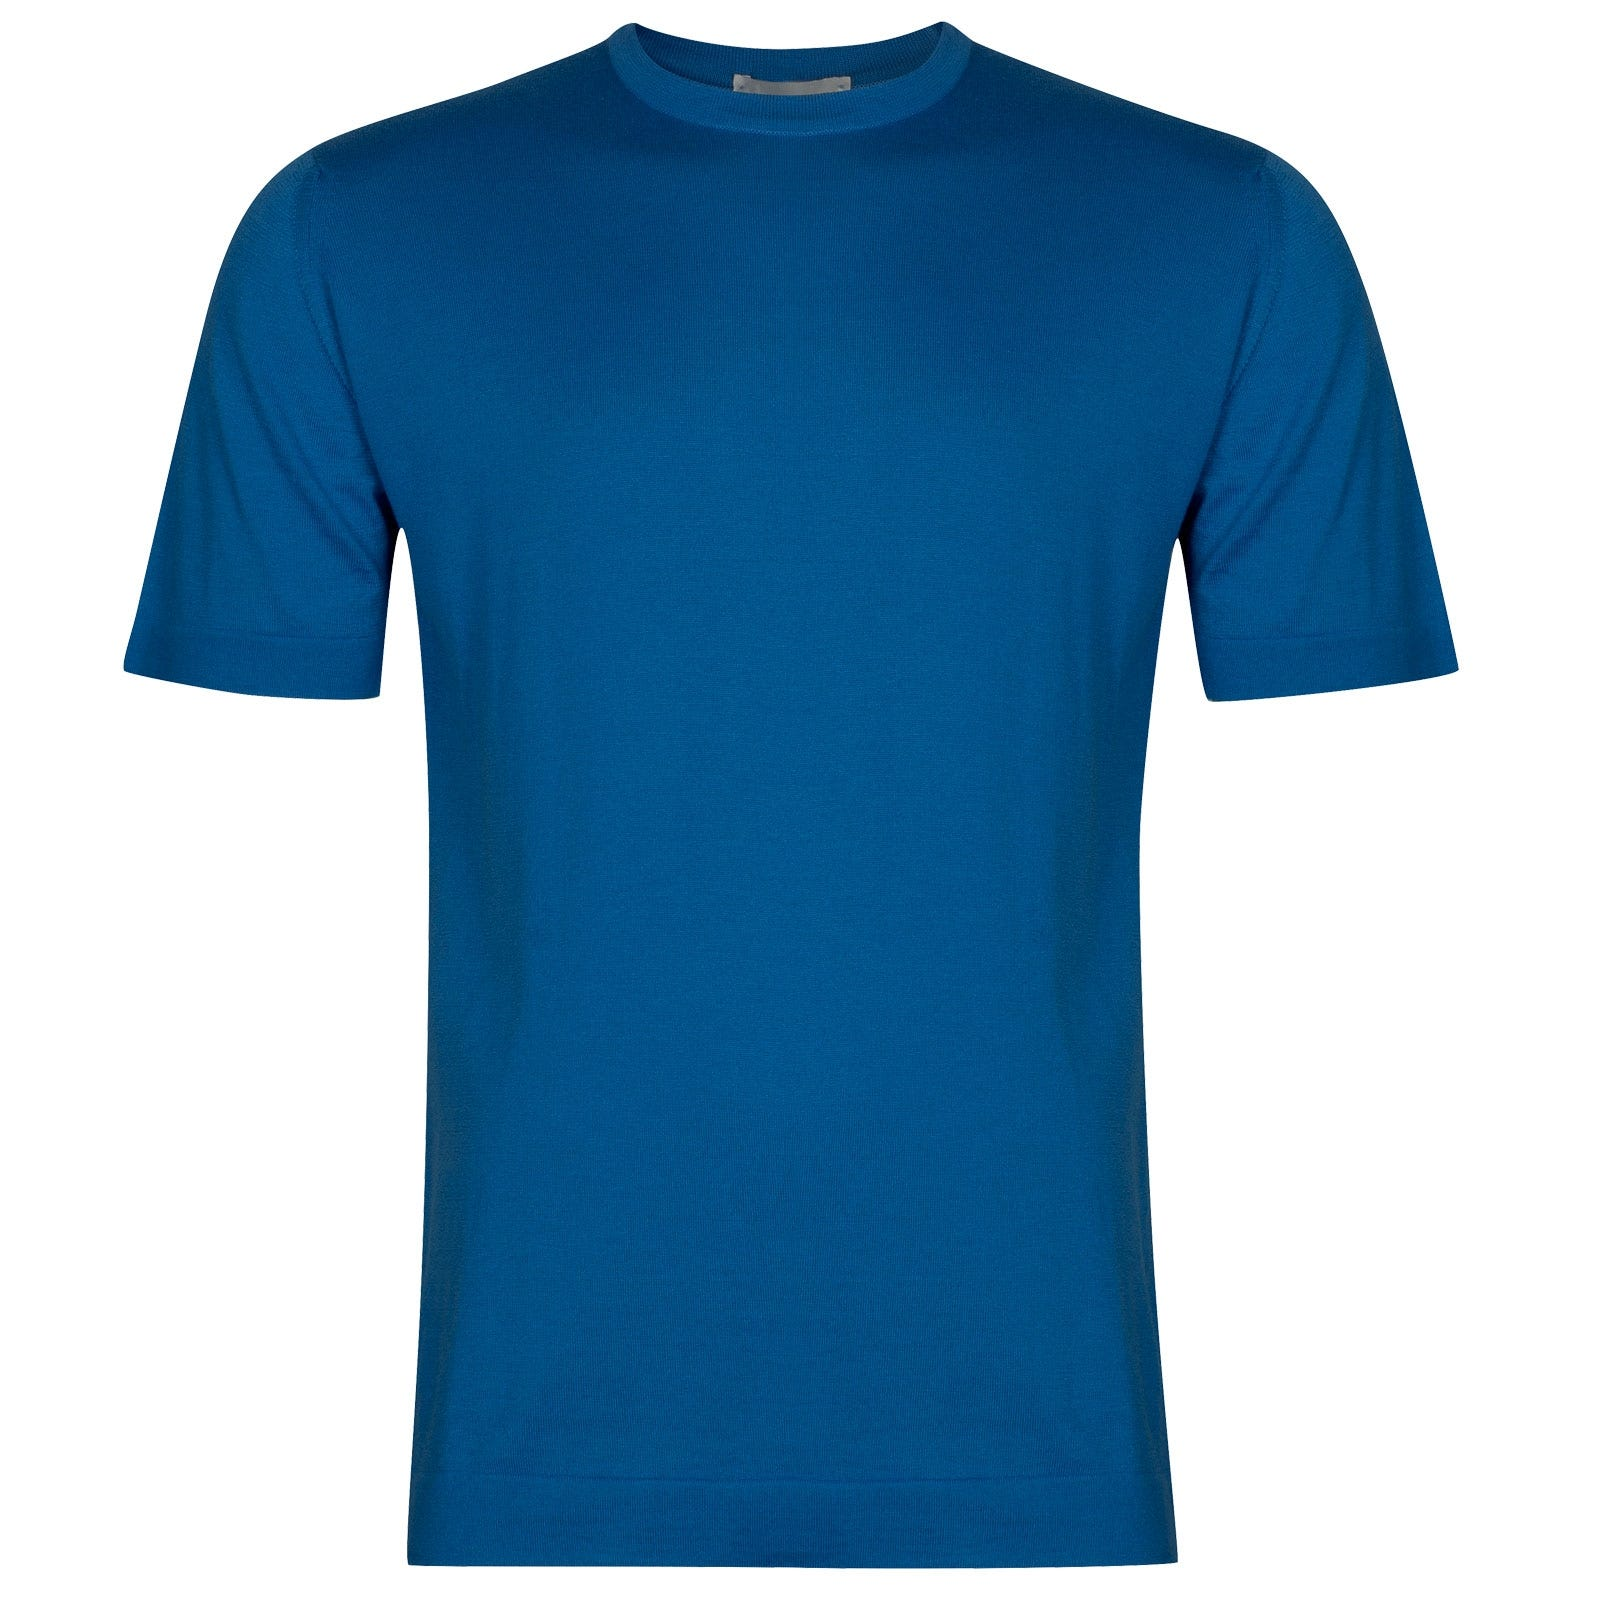 John Smedley Lorca in Statice Blue T-Shirt-XLG